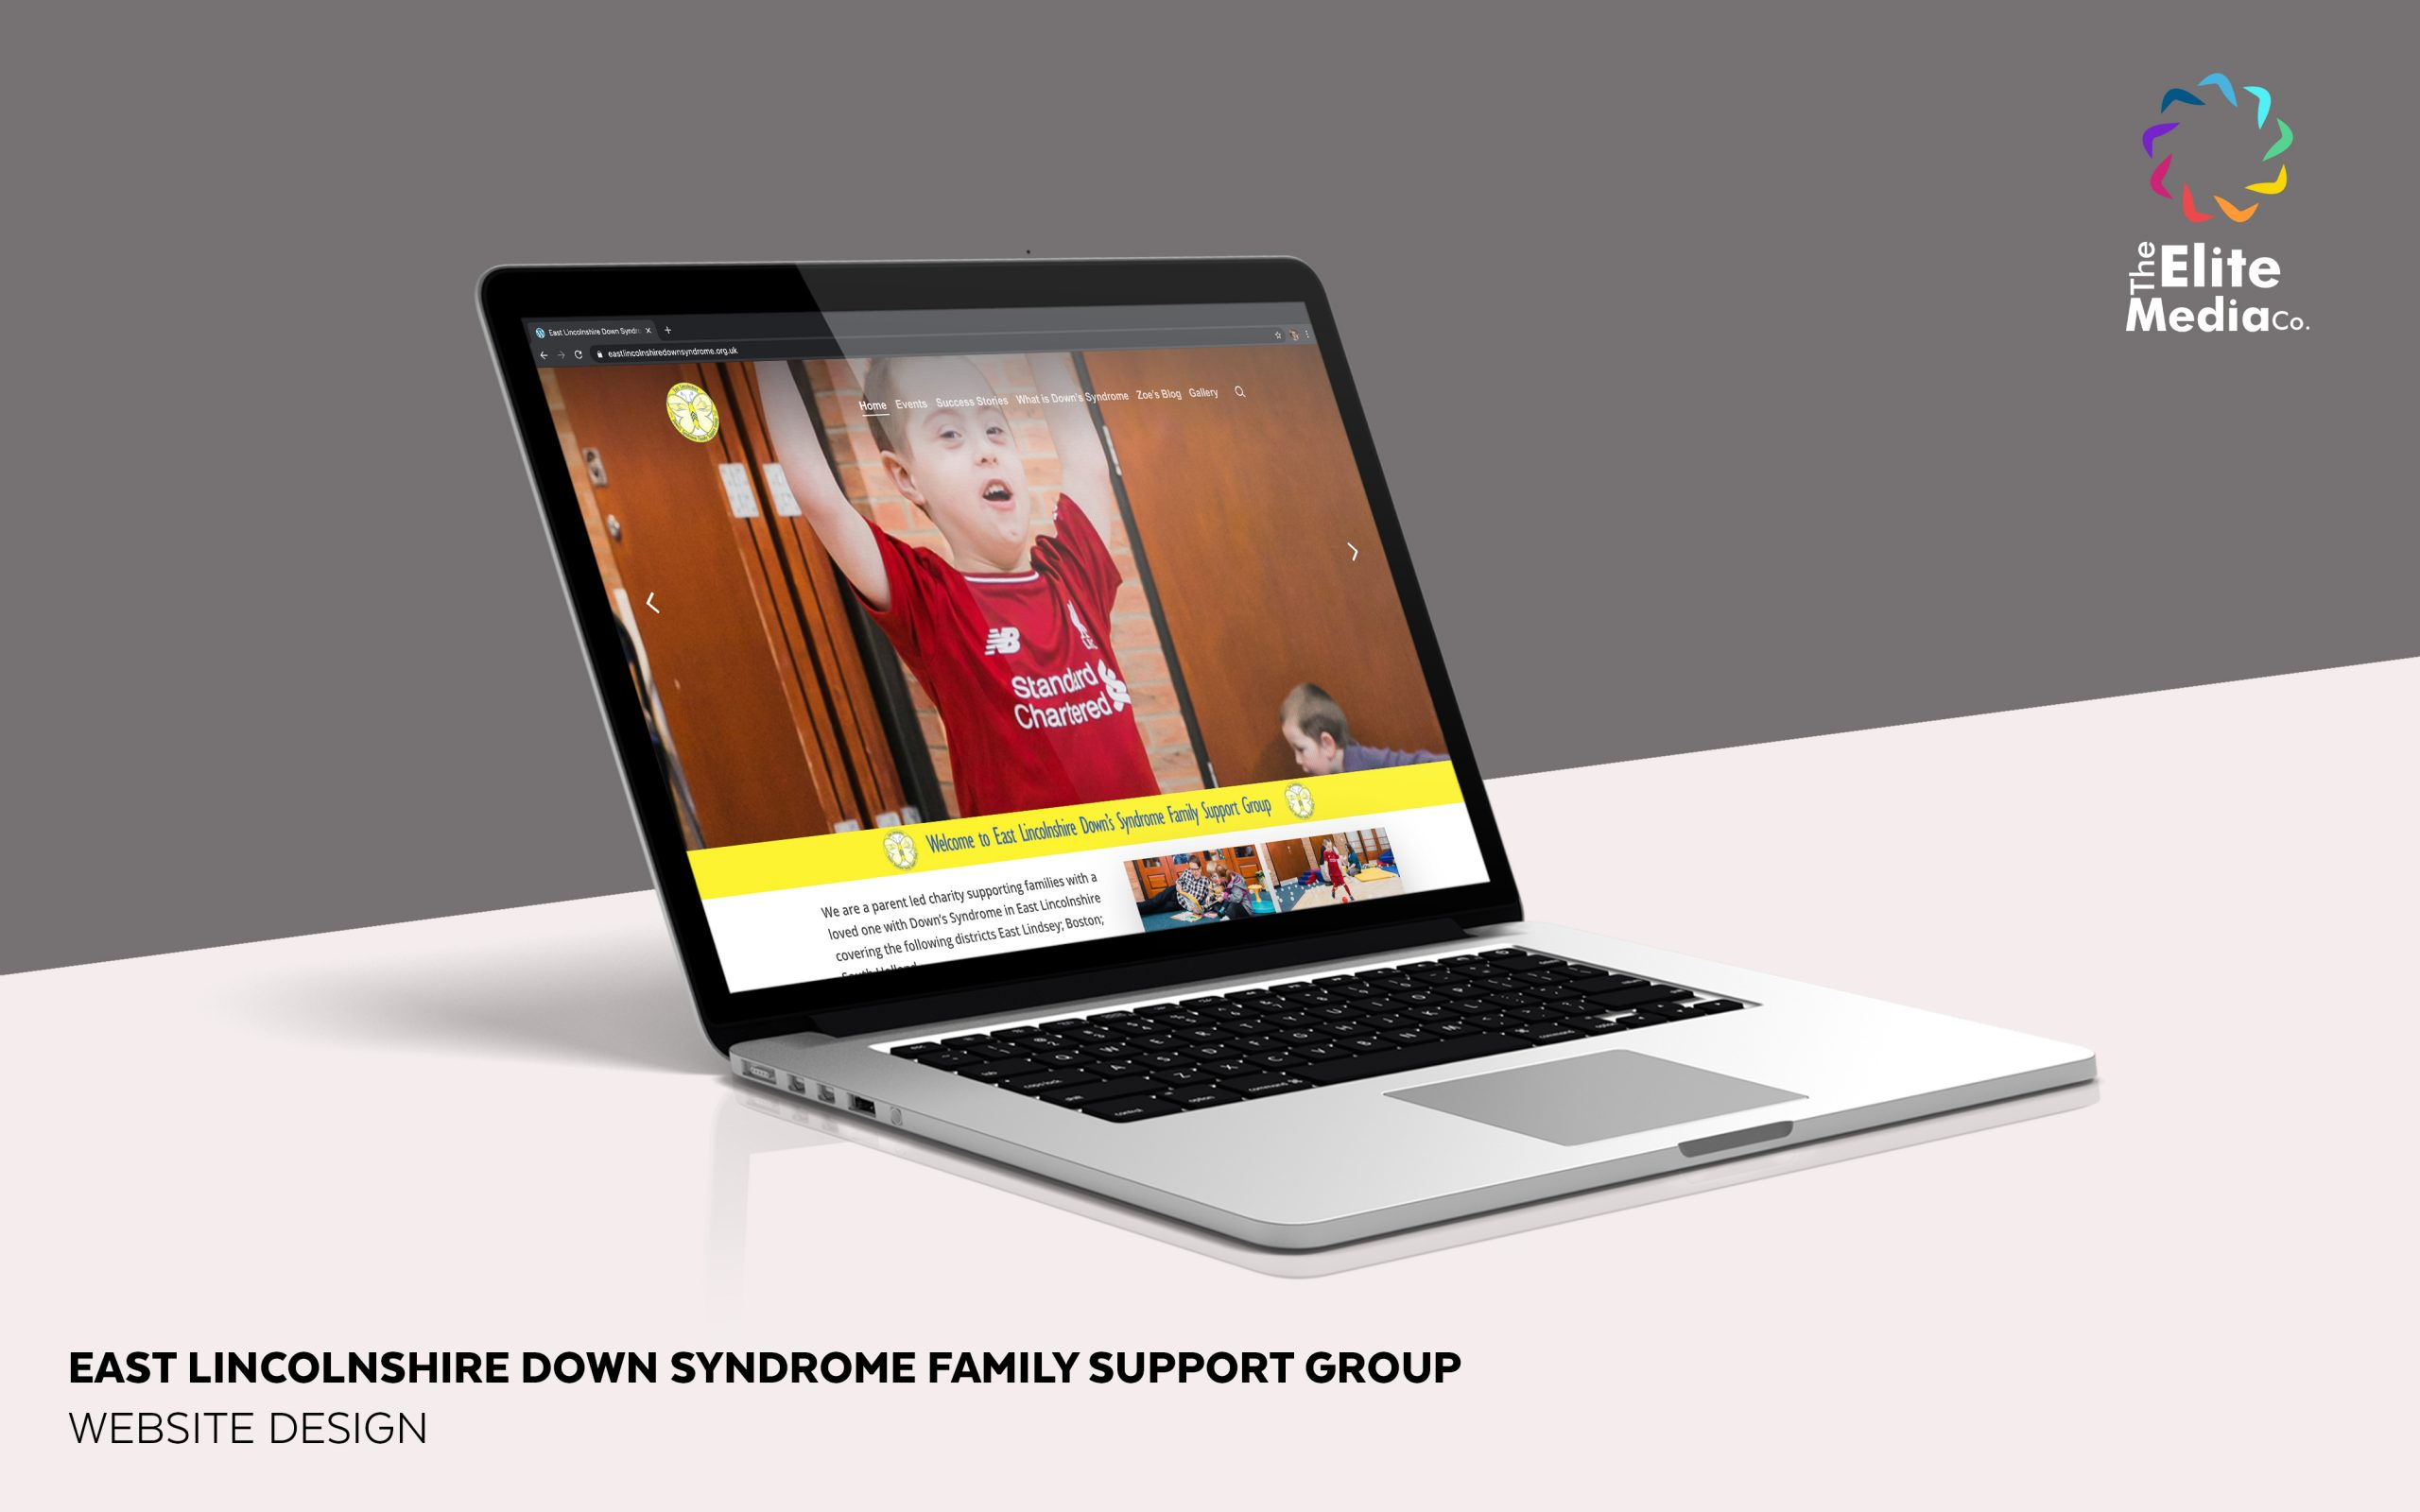 East Lincolnshire Down Syndrome Family Support Group – Website